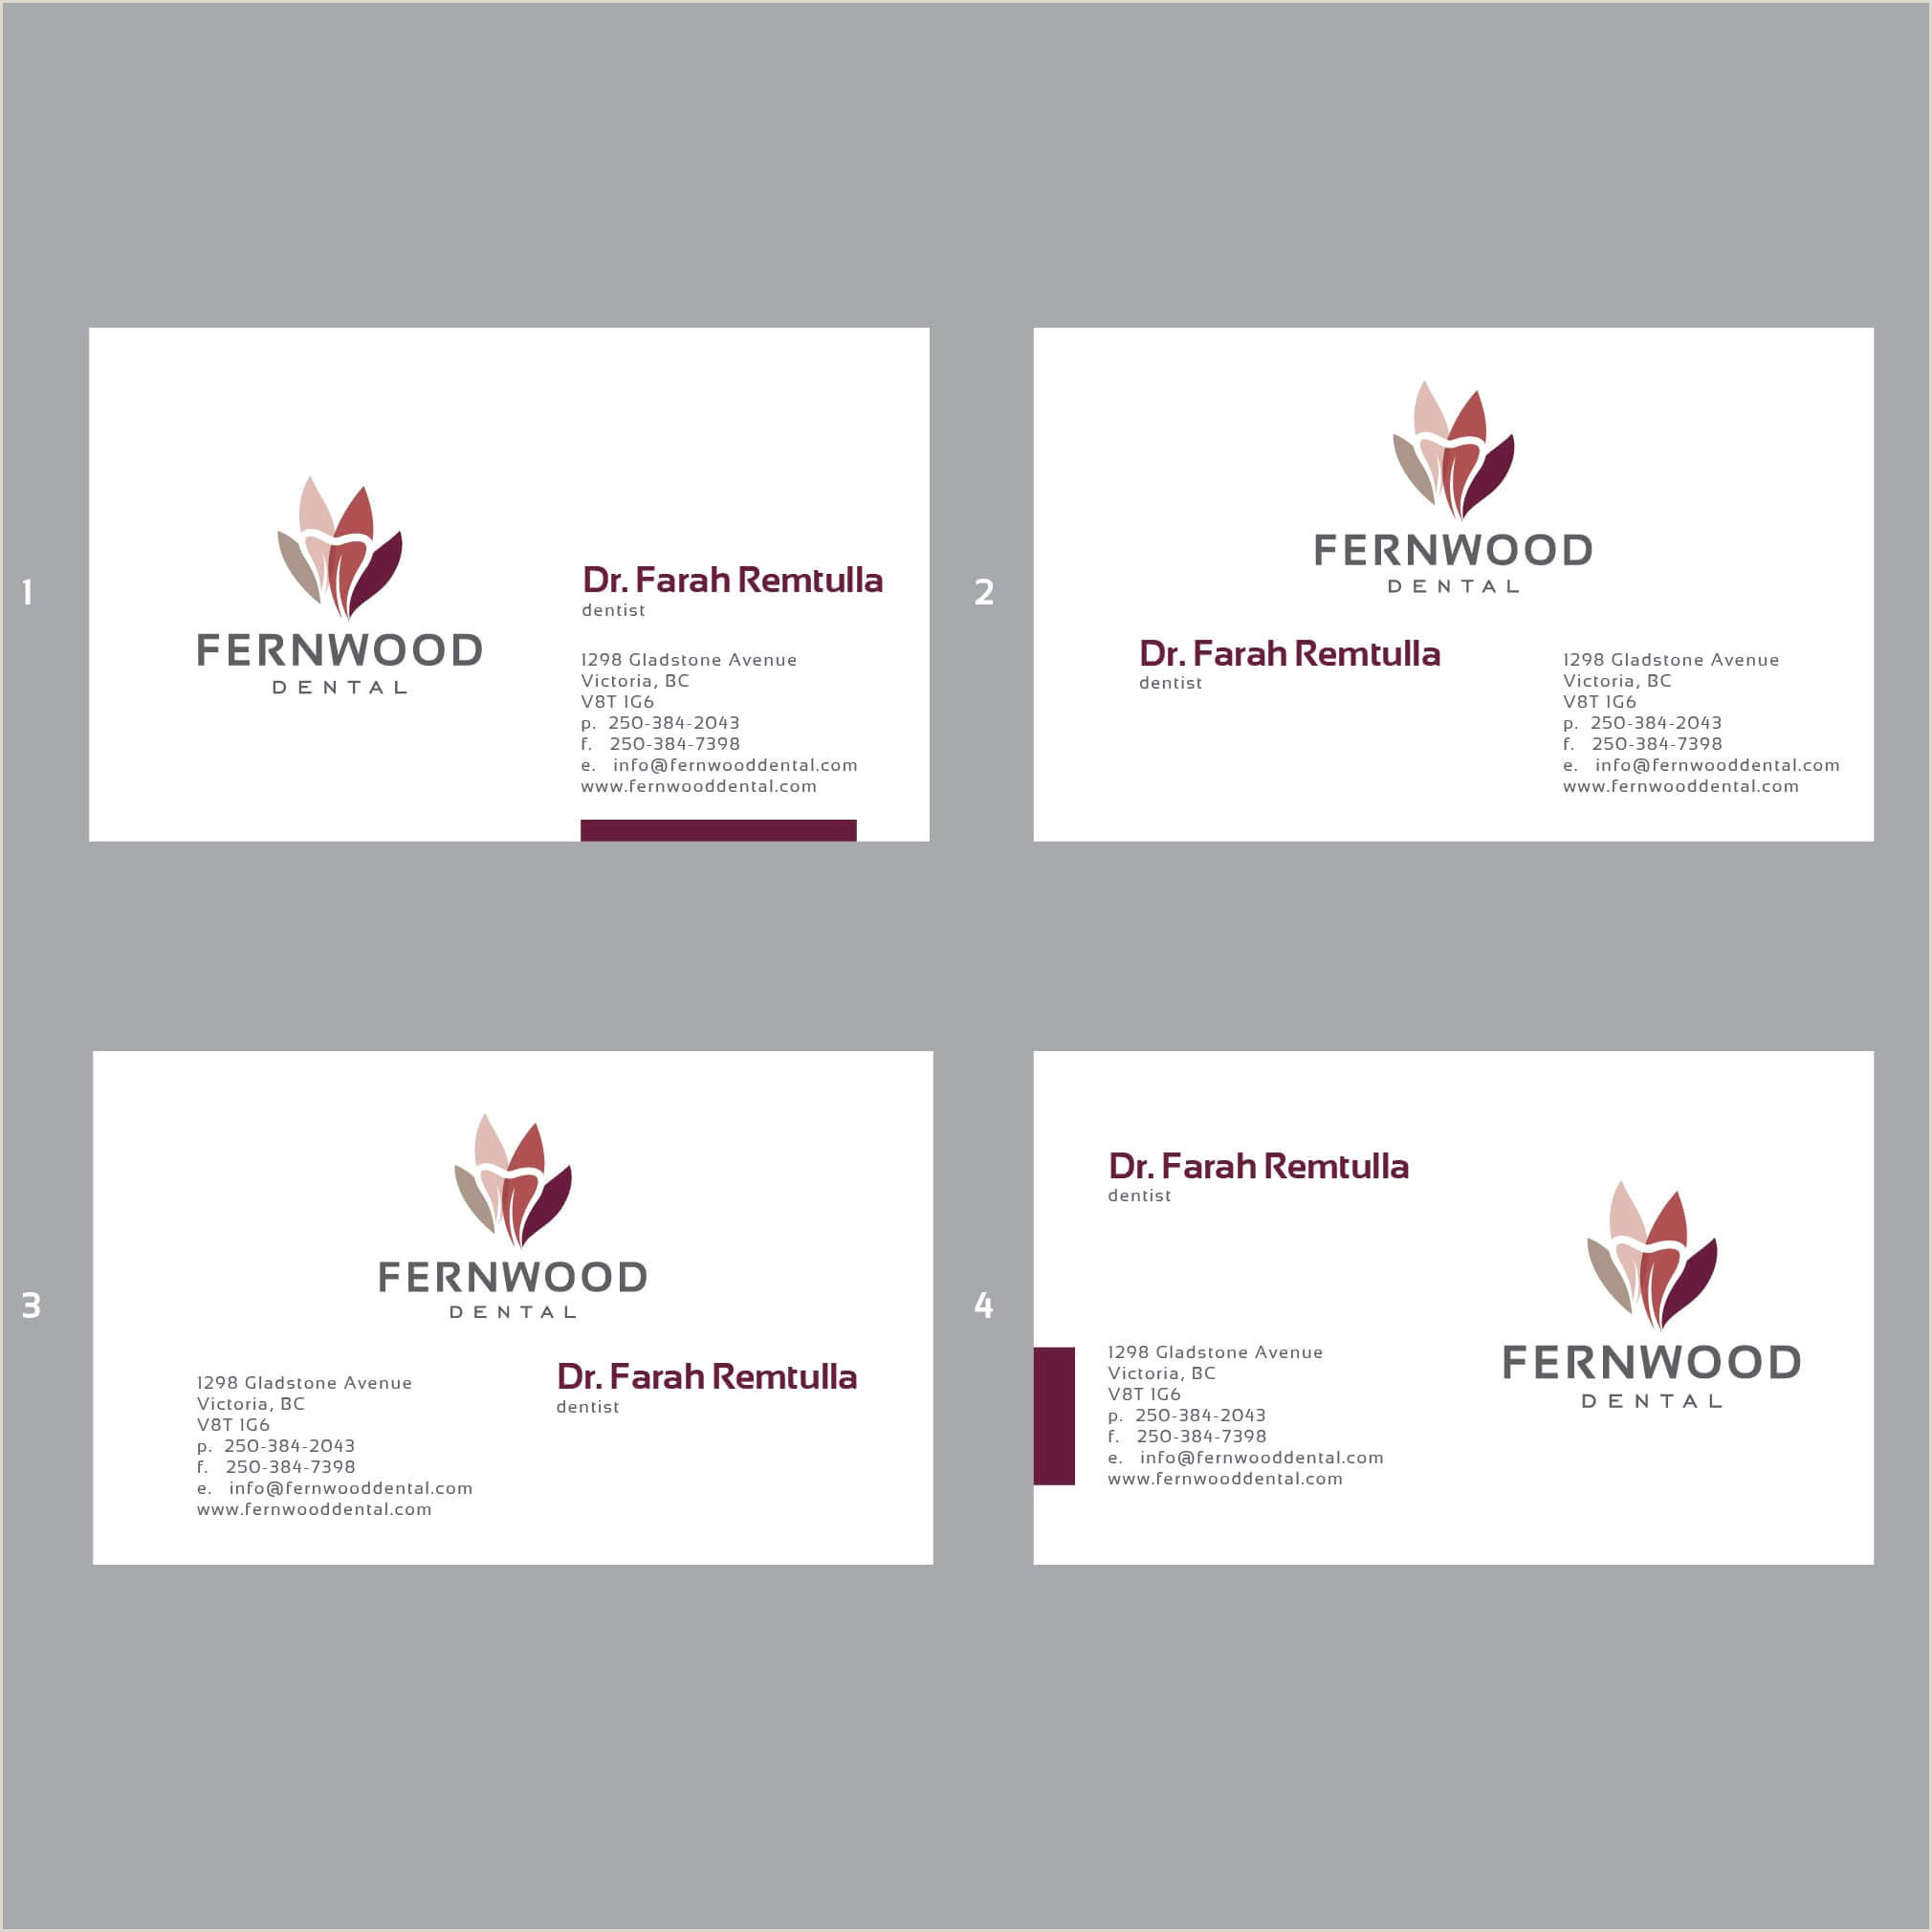 How Much To Design A Business Card Crowdspring Business Card